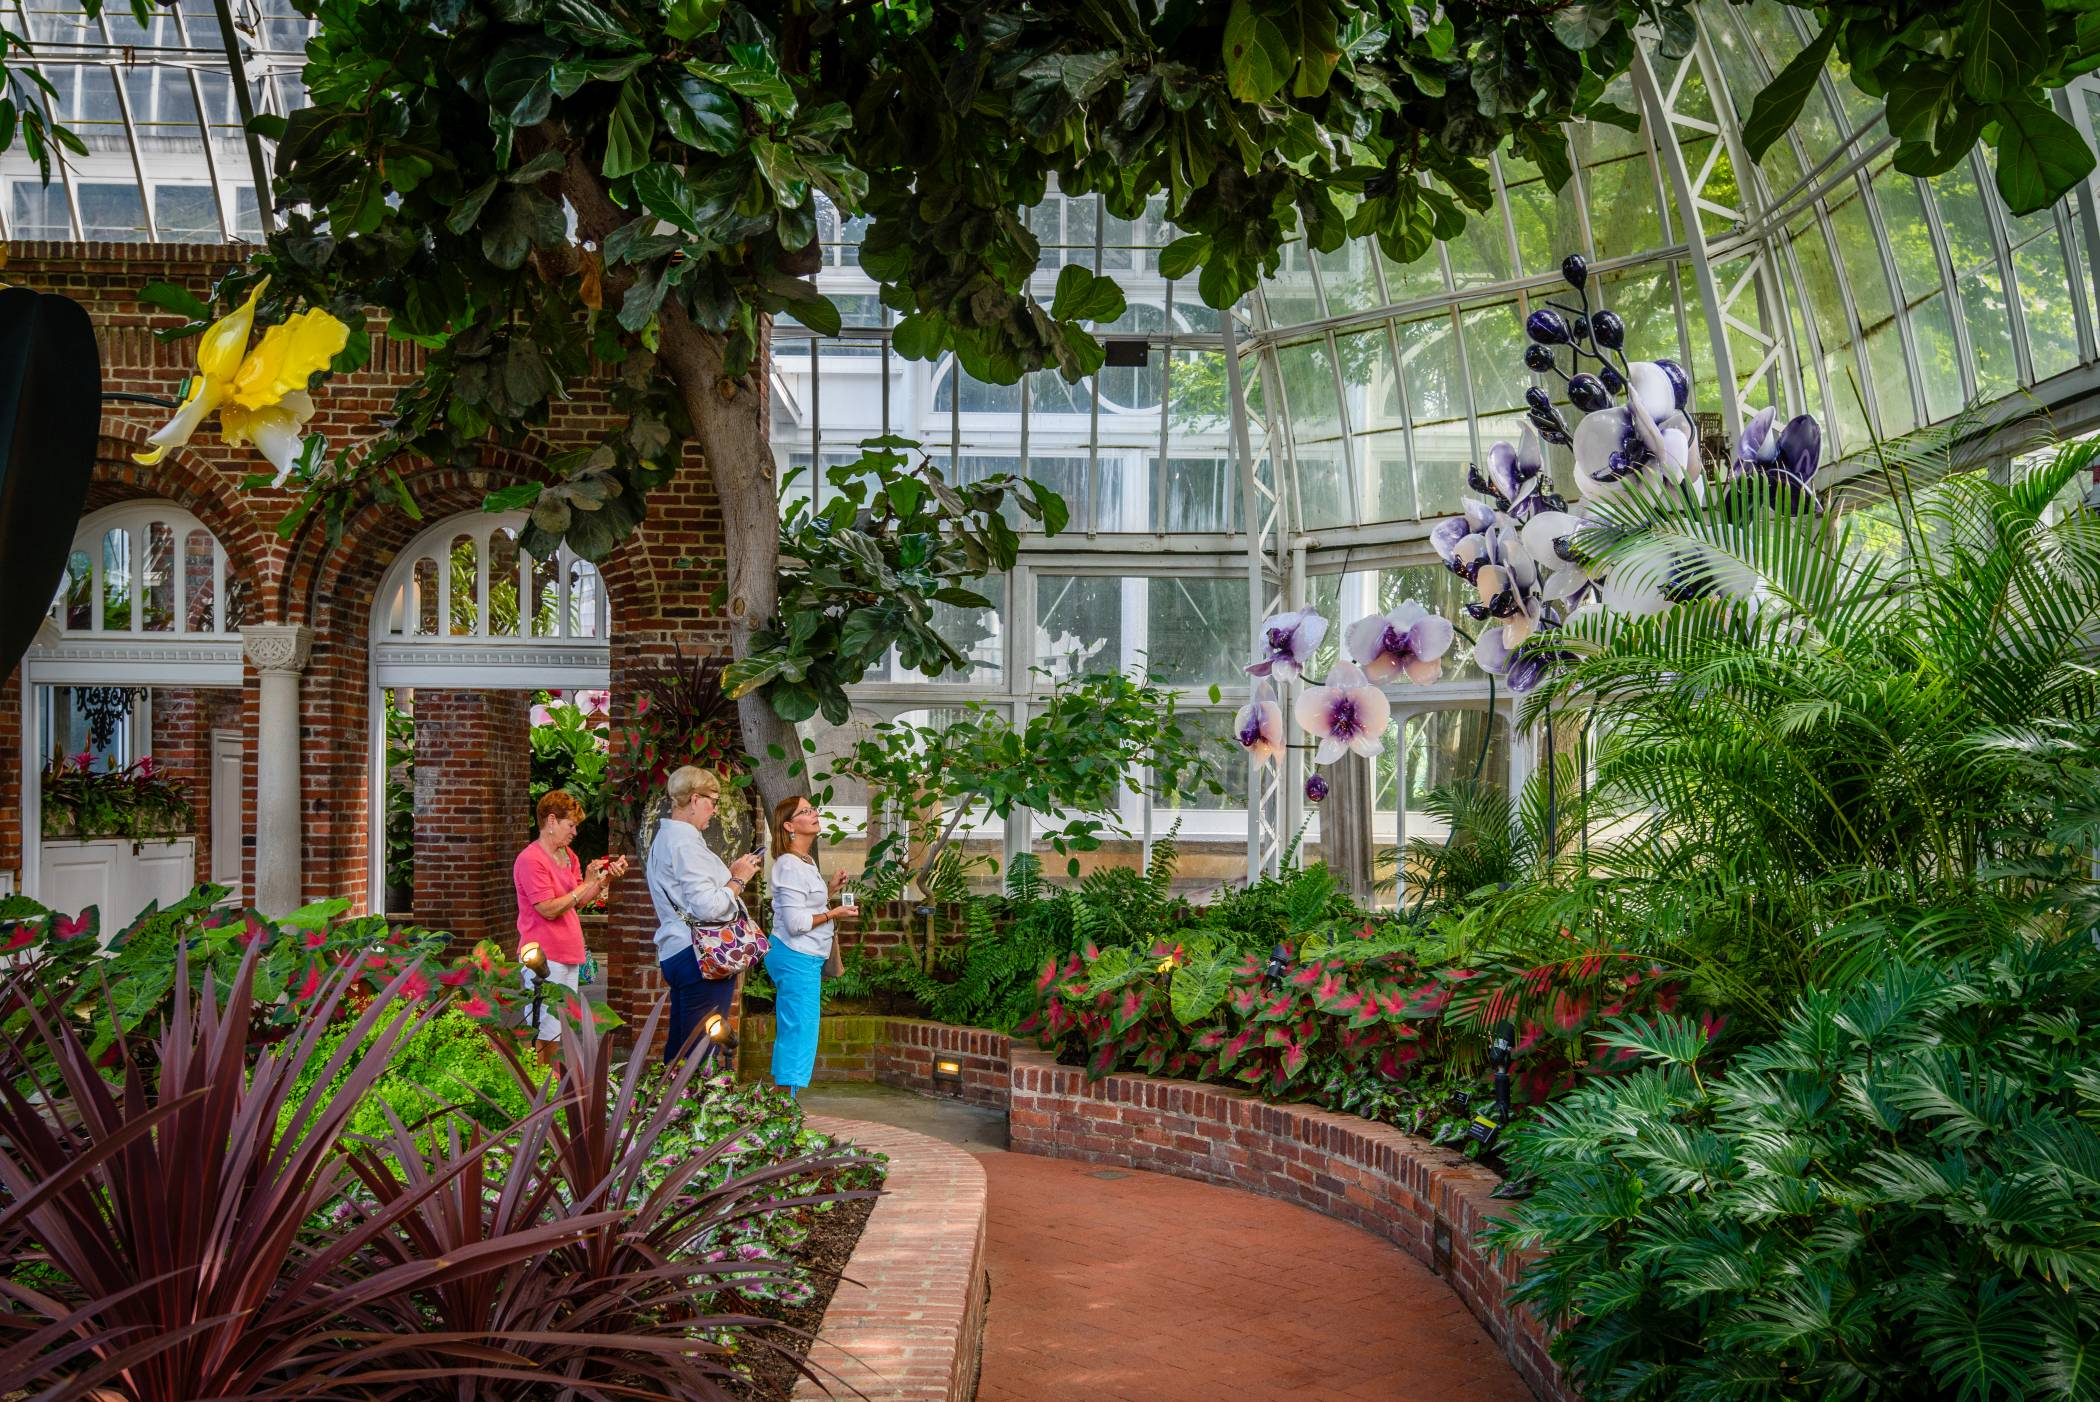 Phipps conservatory and botanical gardens horticulture givegab a key element of phipps mission is to inspire and educate all with the beauty and importance of plants and it all starts with gorgeous mightylinksfo